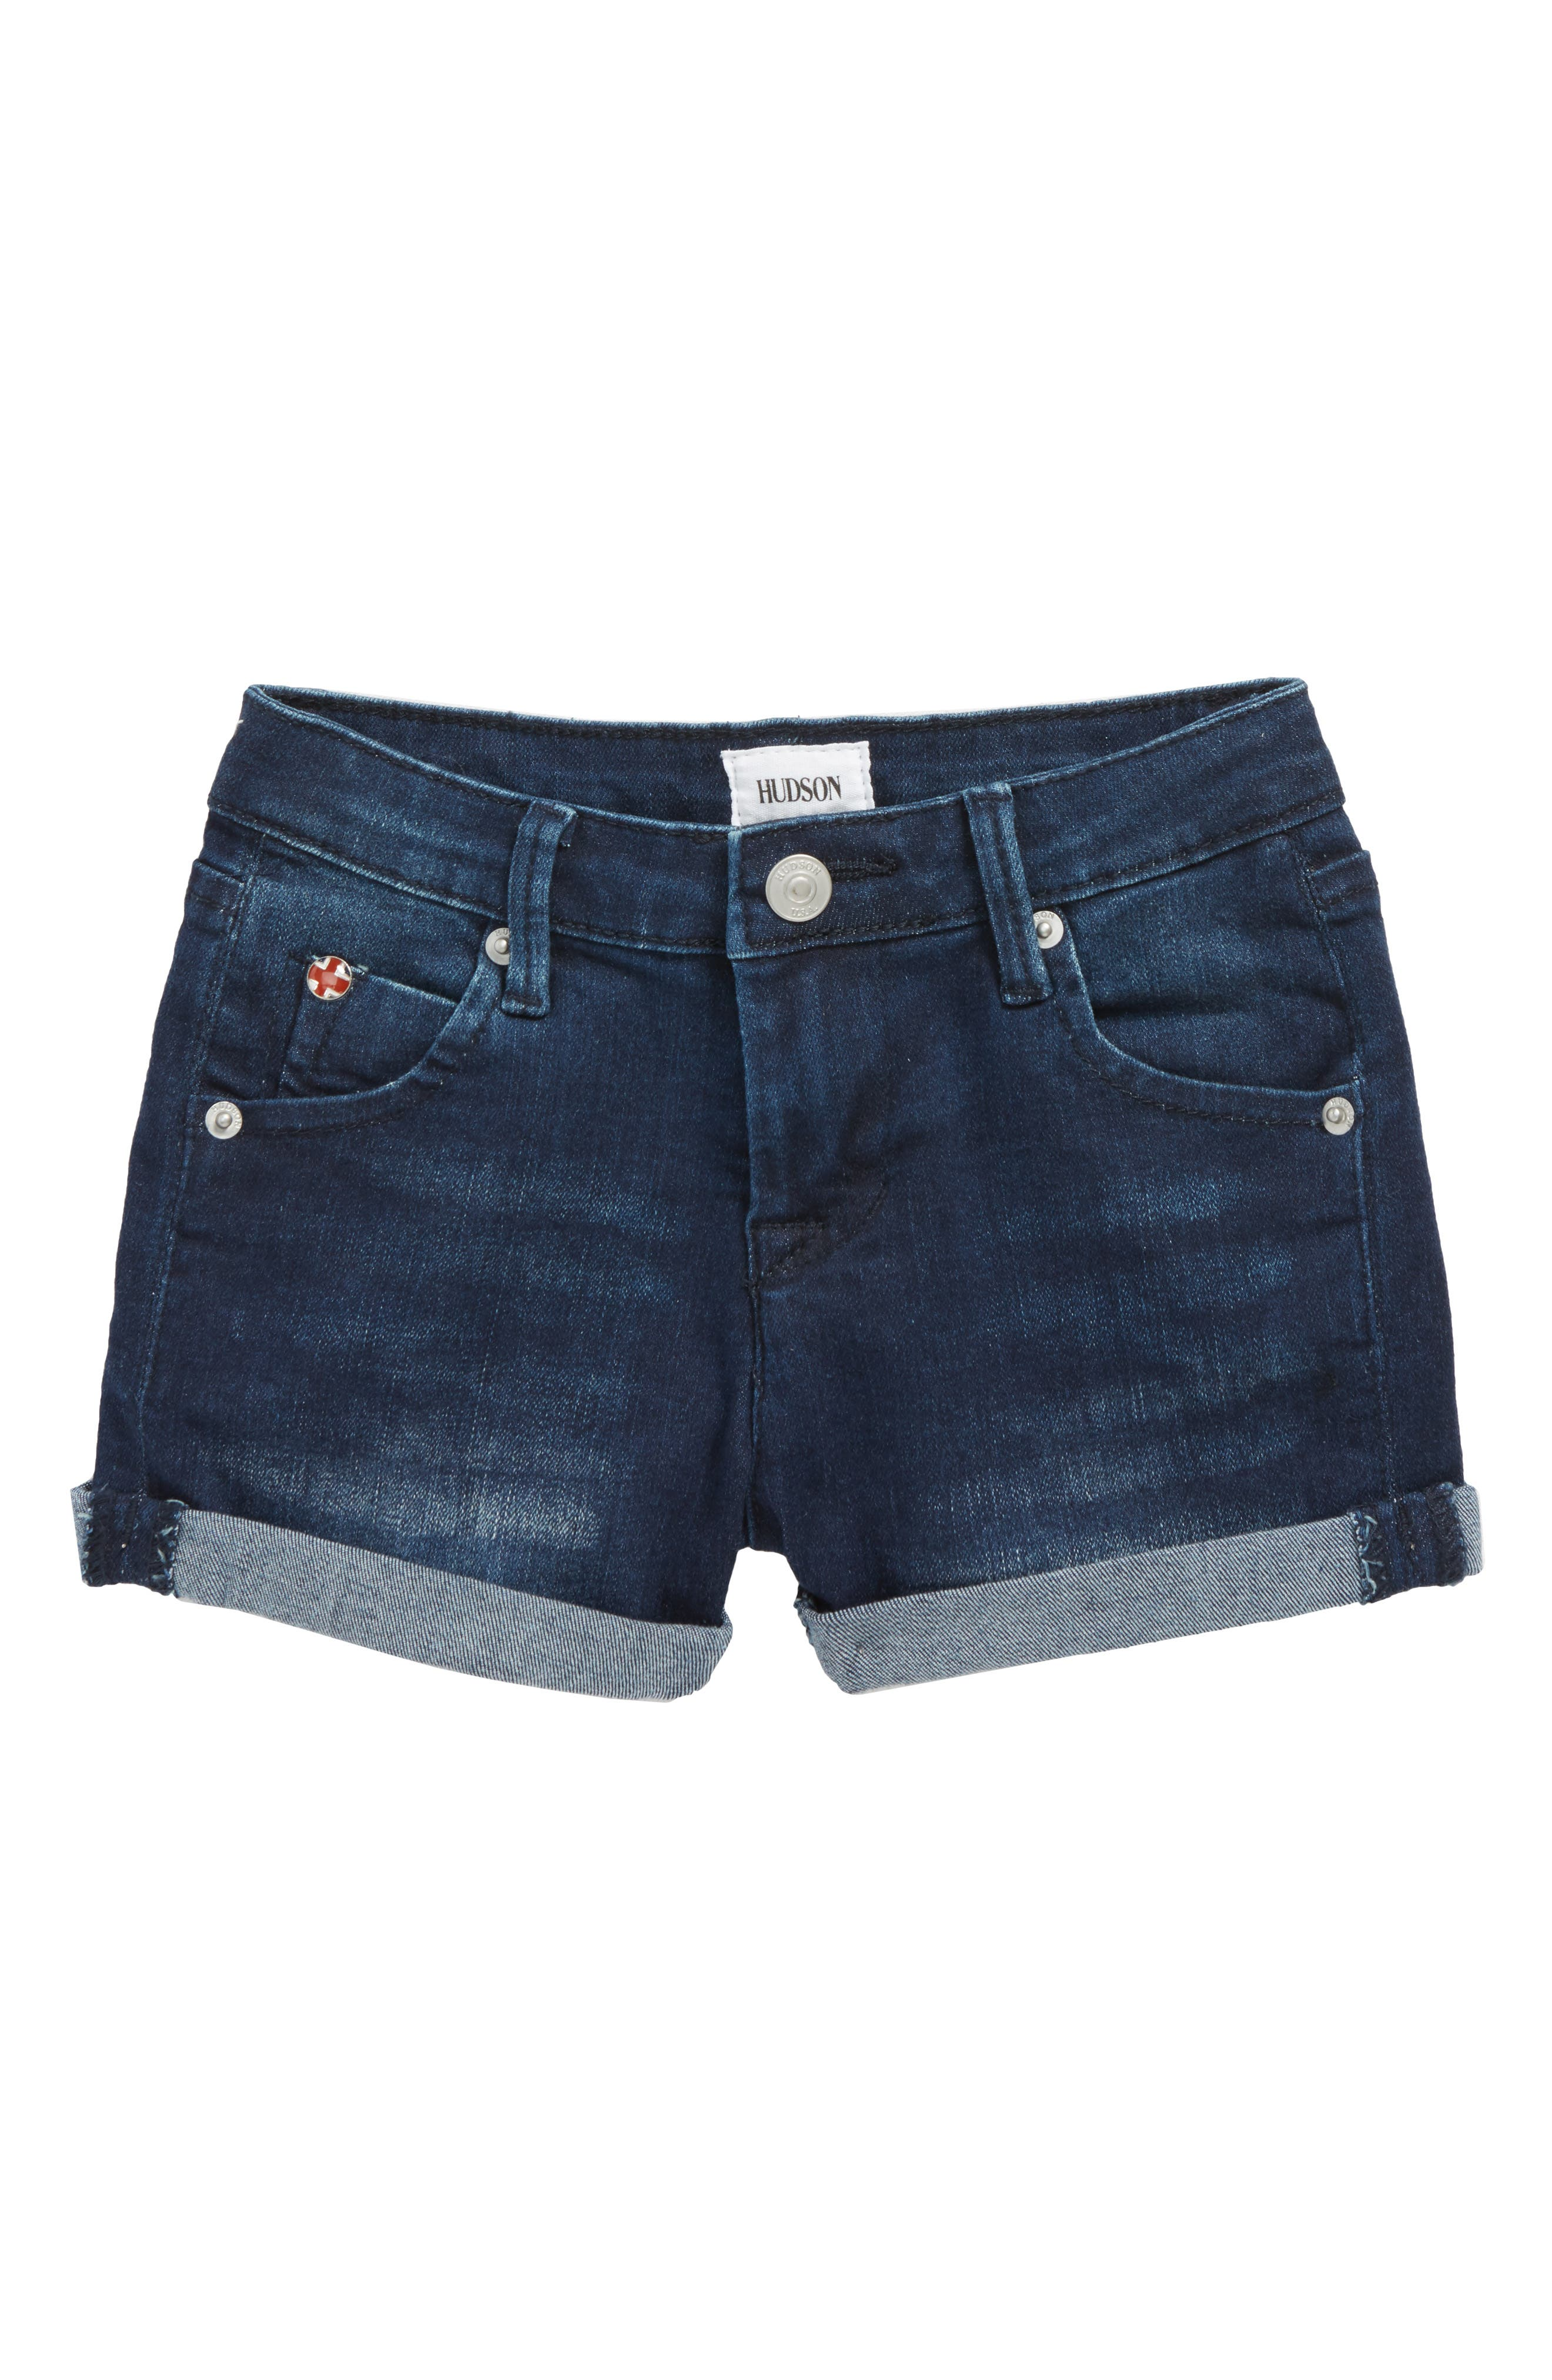 Roll Cuff Denim Shorts,                             Main thumbnail 1, color,                             427